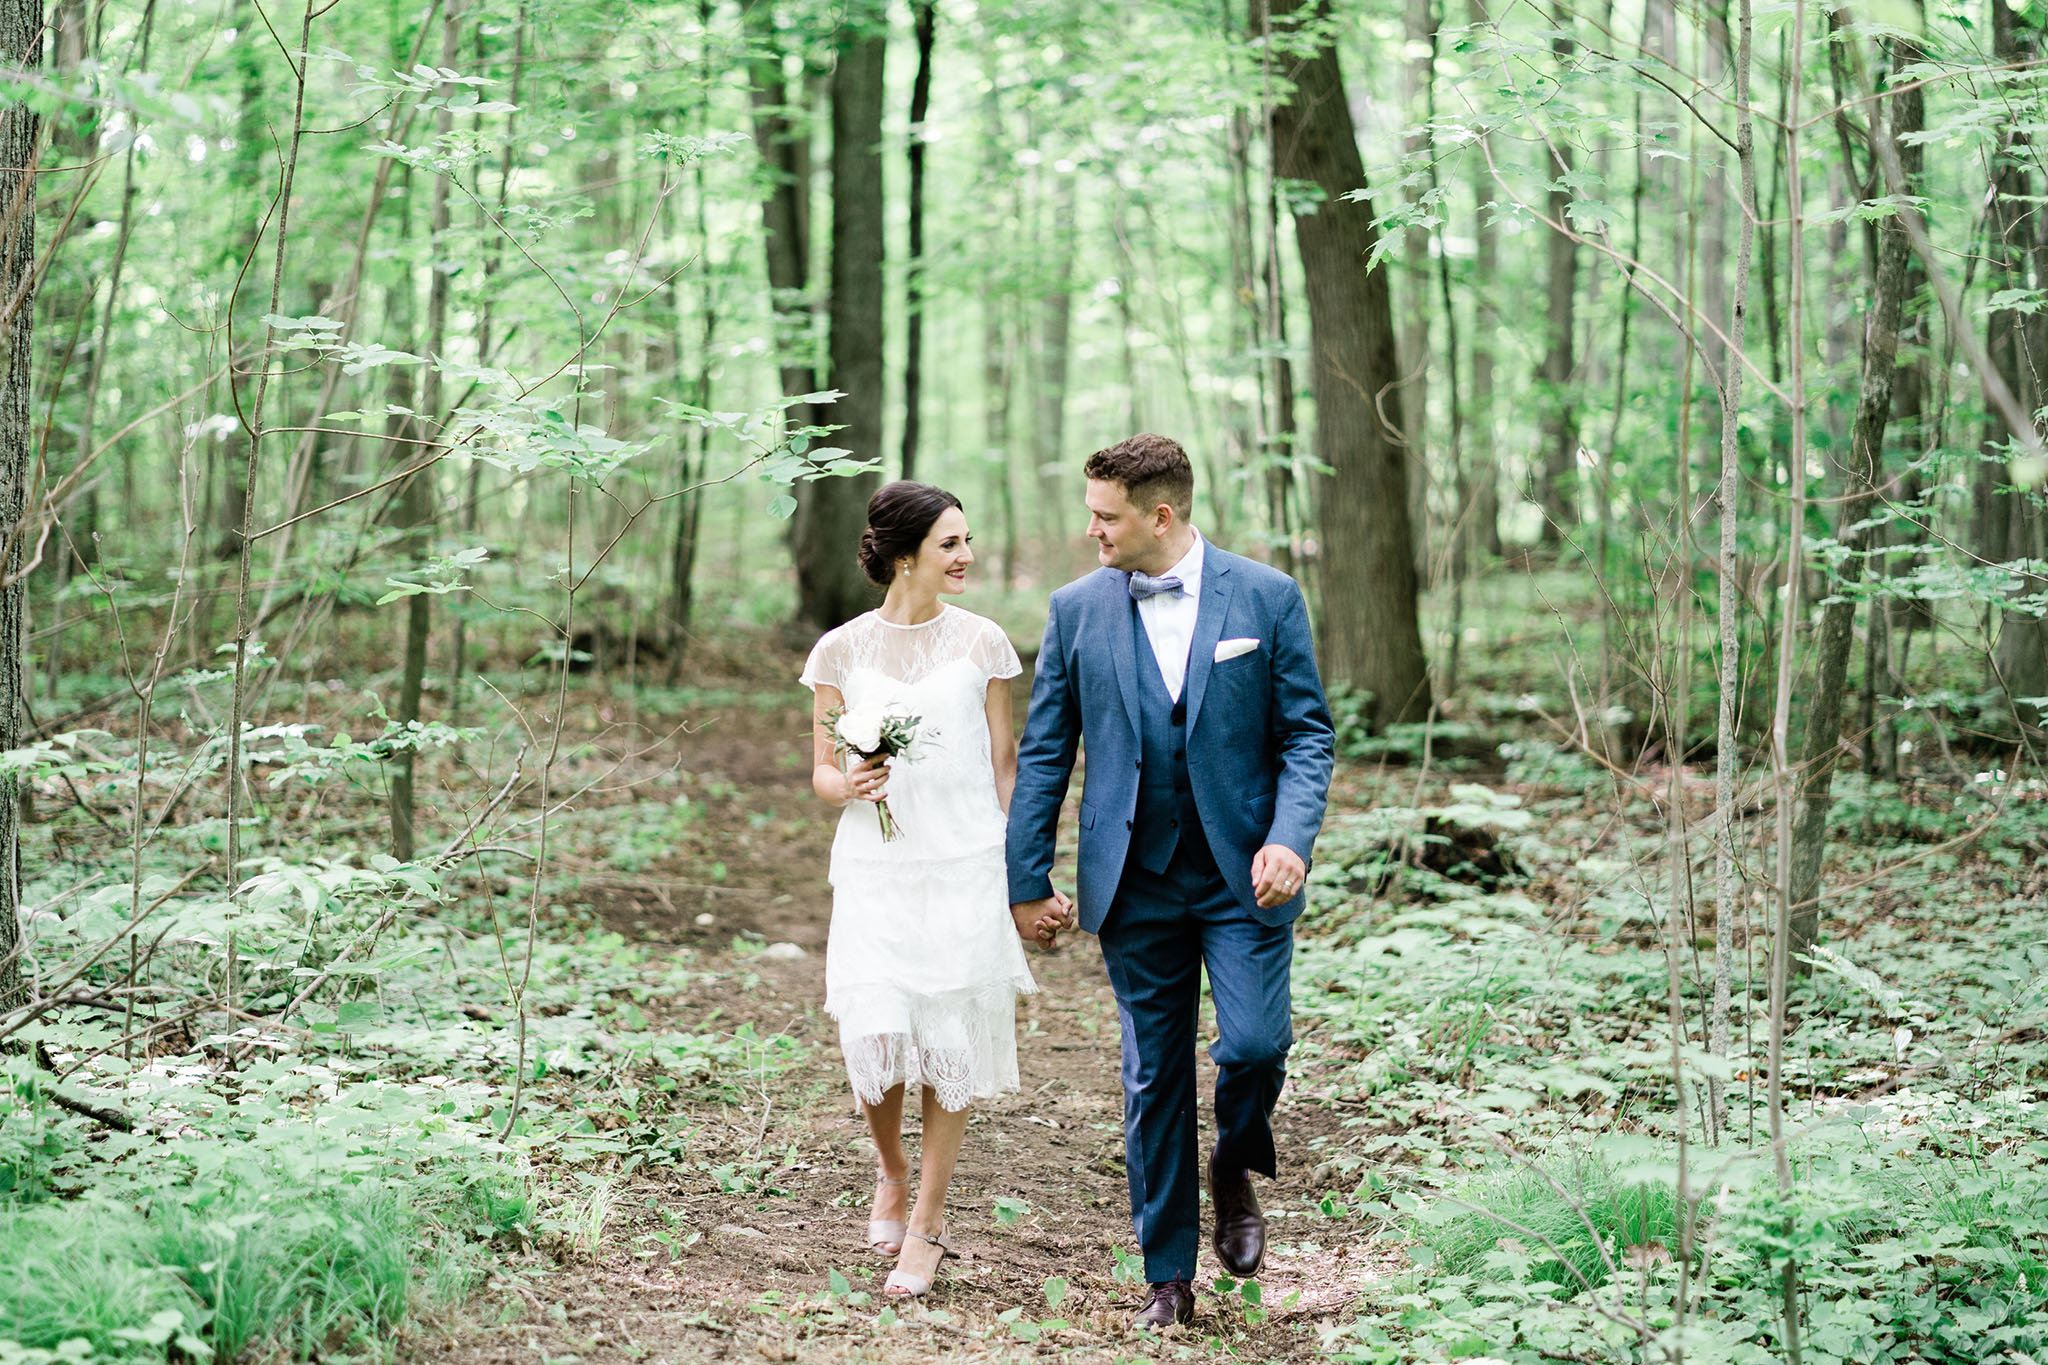 Happily married couple waking thru a quiet and peaceful forest hand in hand, just after getting married. Bride wearing cocktail length dress reminiscent of a 1930's flapper. Gentleman wearing dark blue suit with bowtie. Floral arrangement is small, delicate and classic.